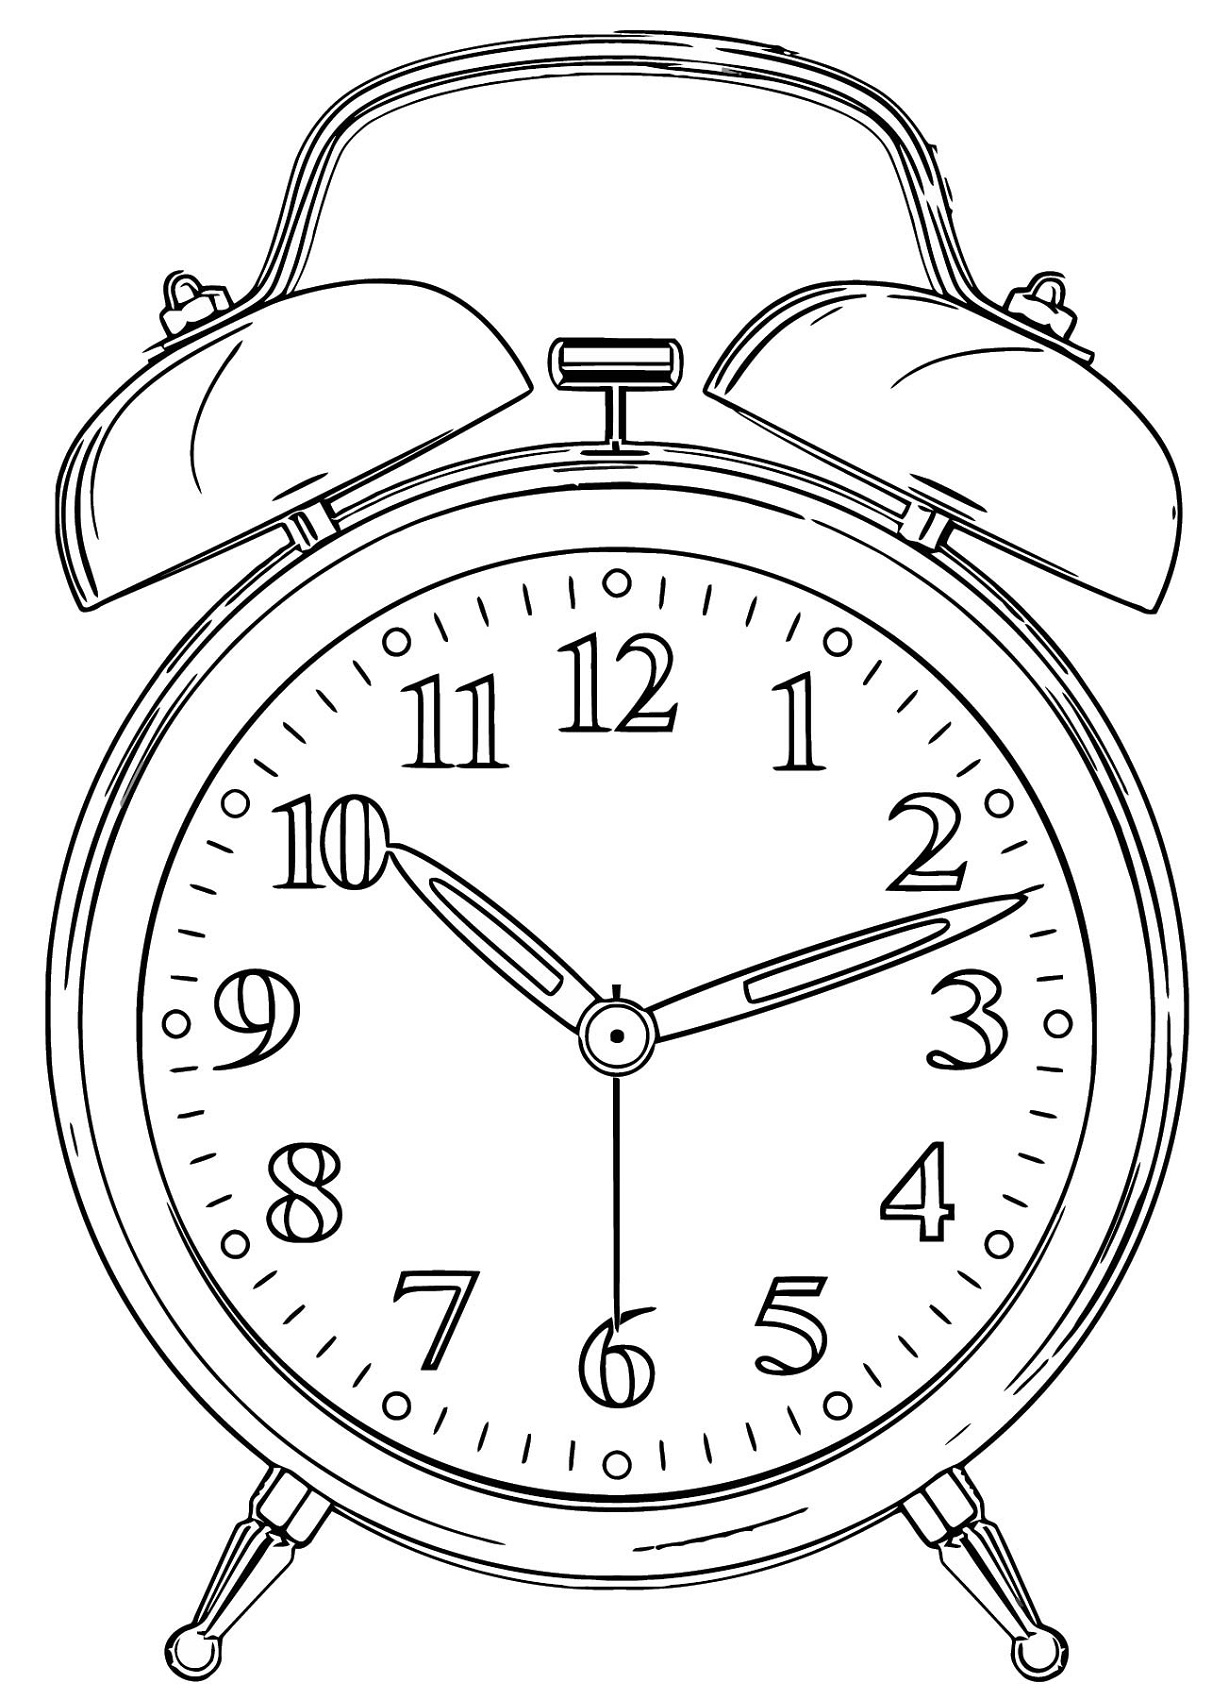 coloring clock clock coloring pages coloring pages to download and print clock coloring